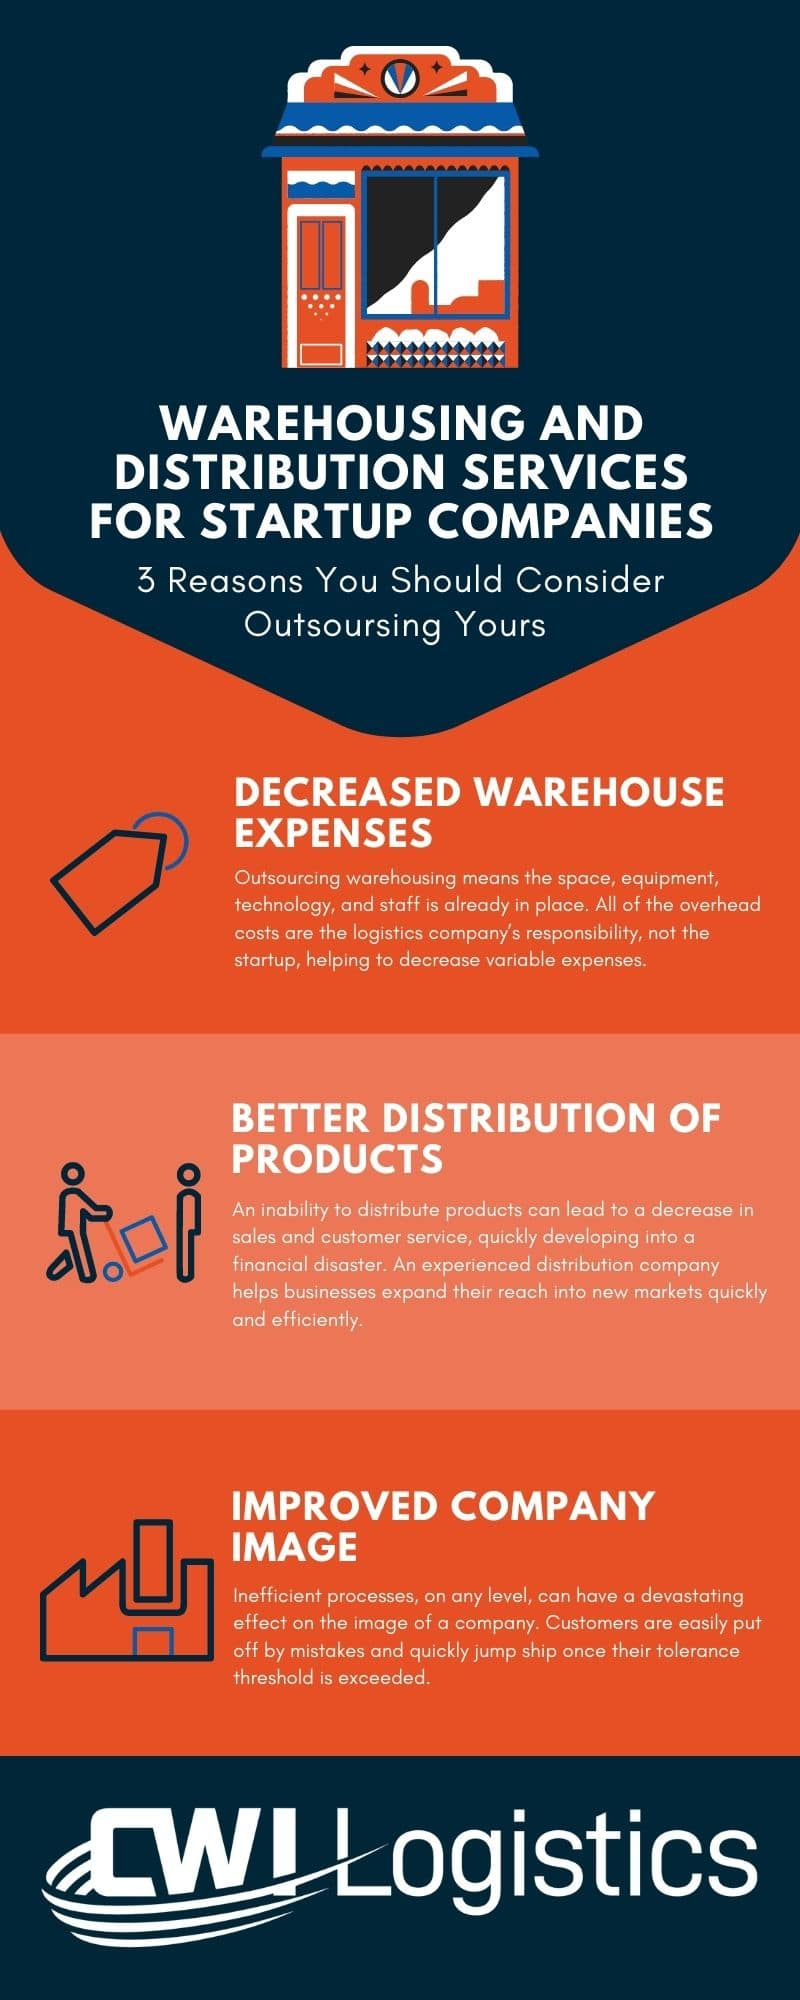 Warehousing and distribution for startups, reasons to consider